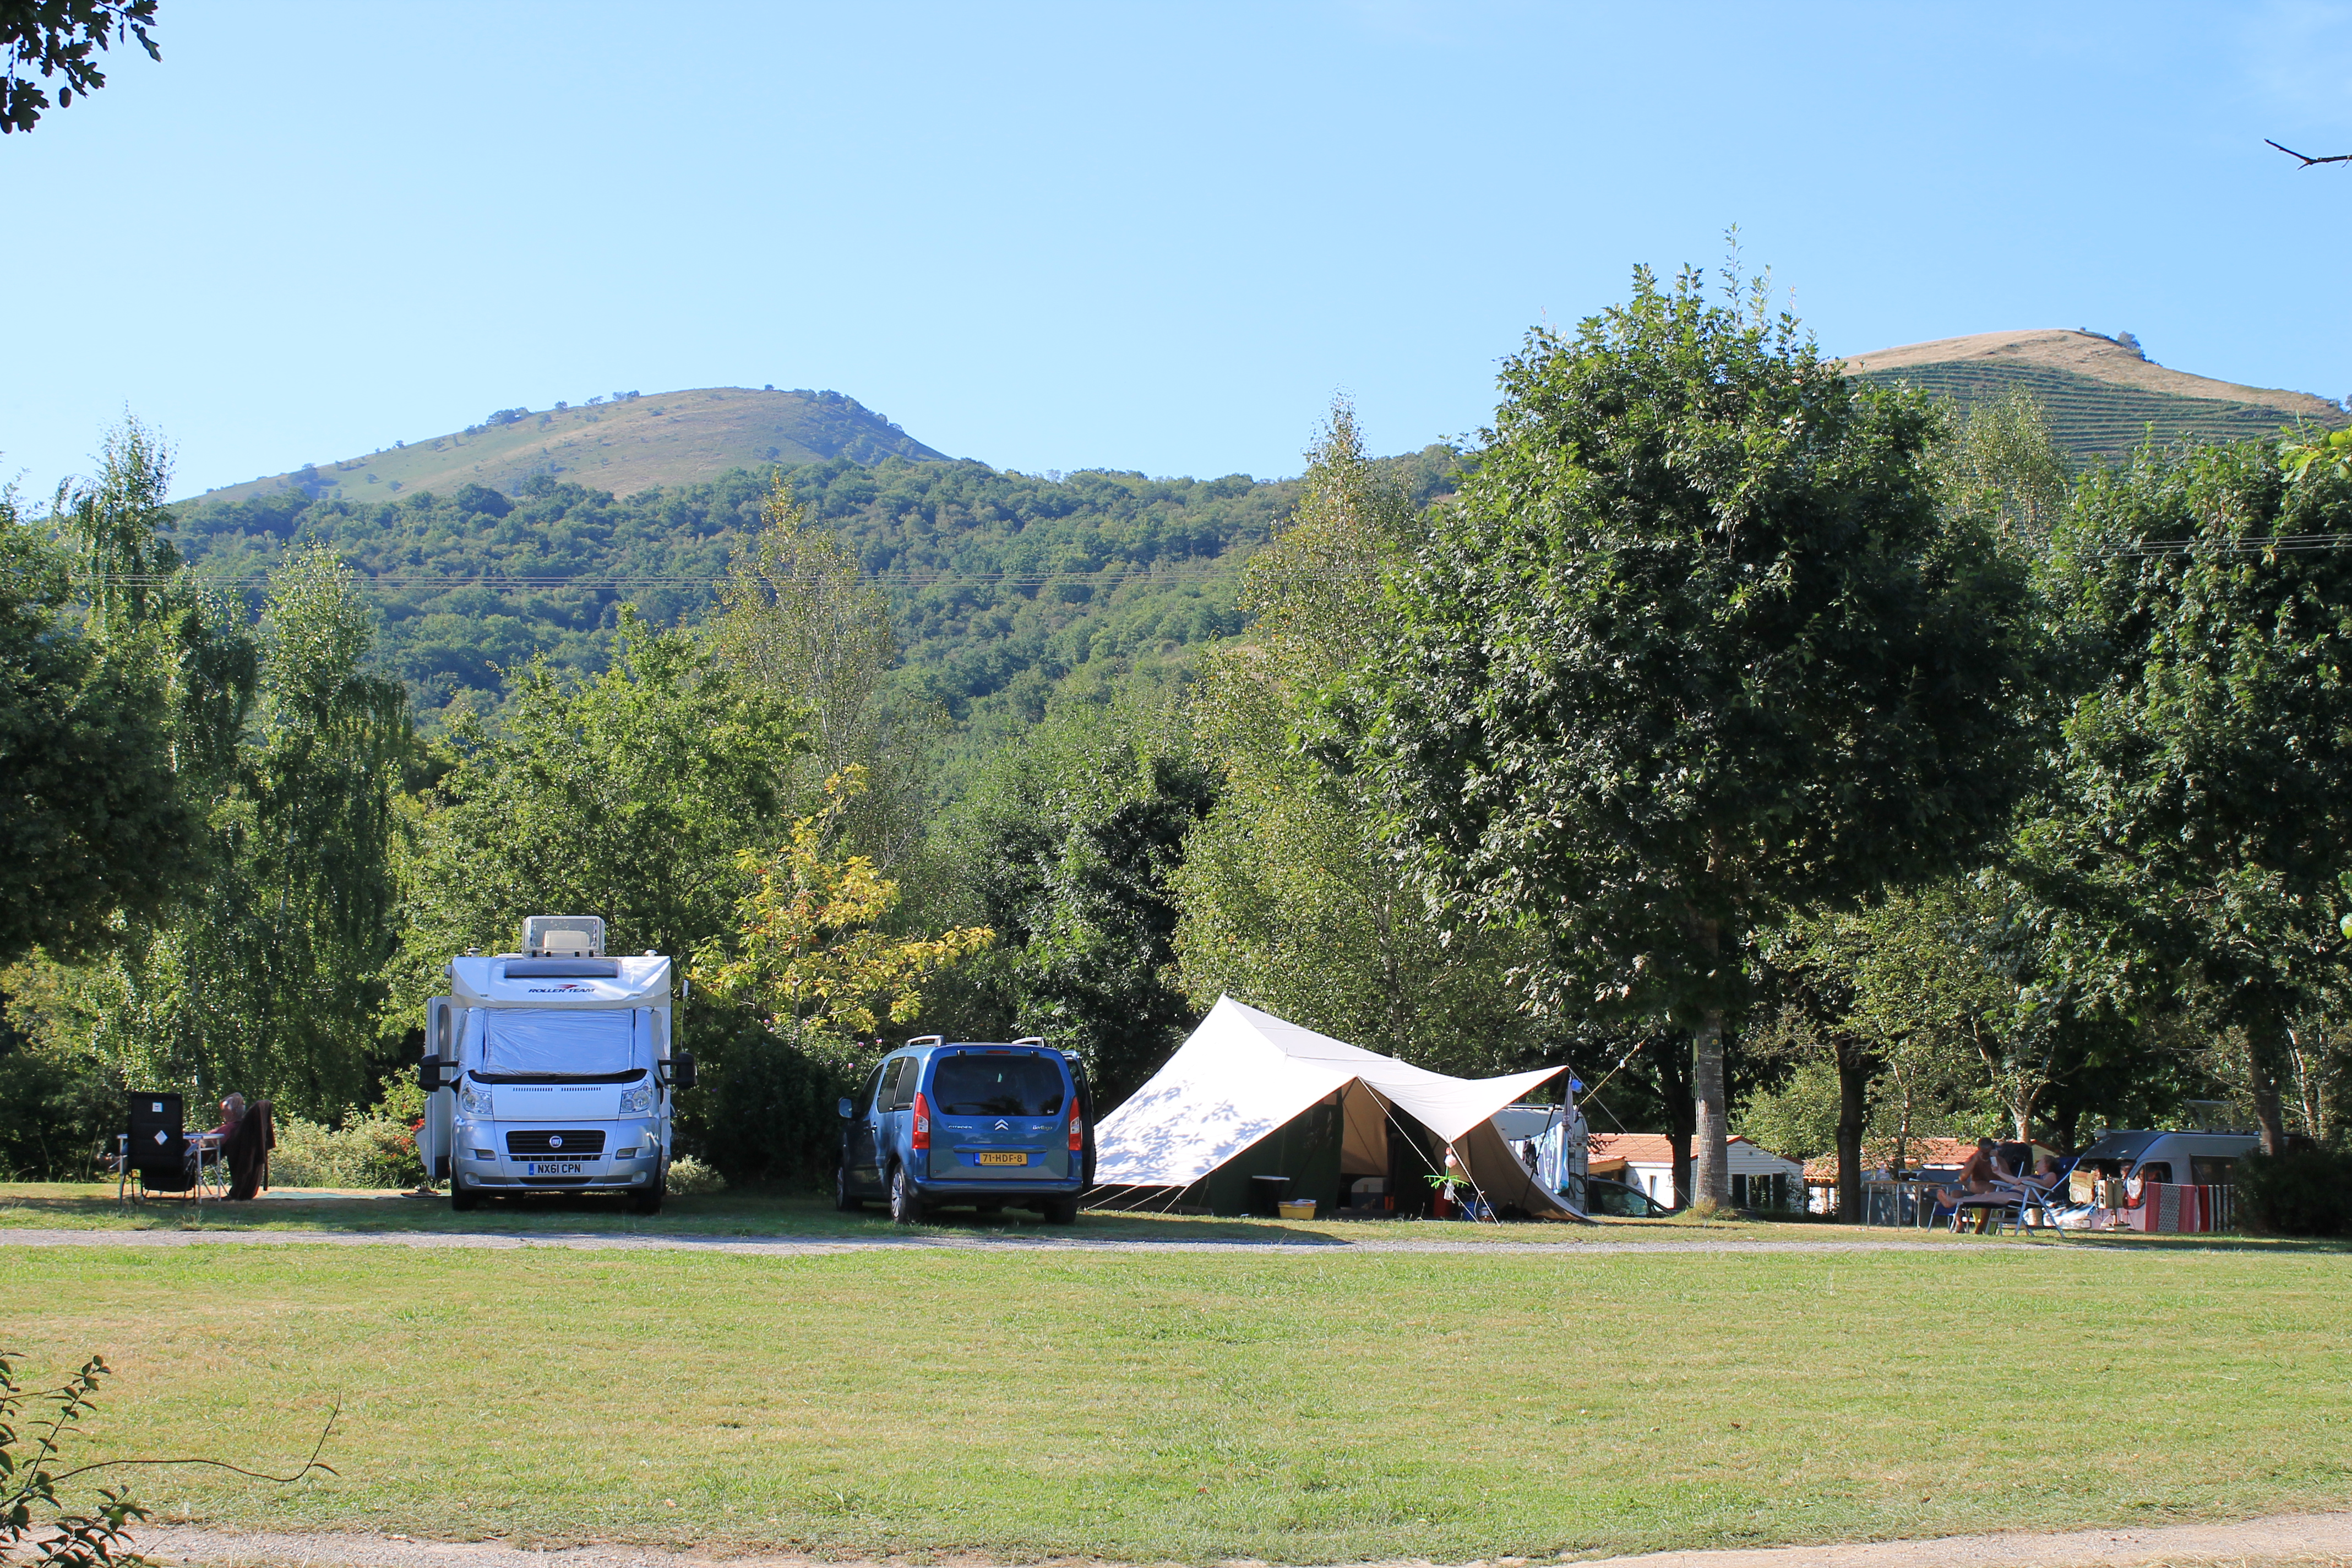 www.camping-narbaitz.com